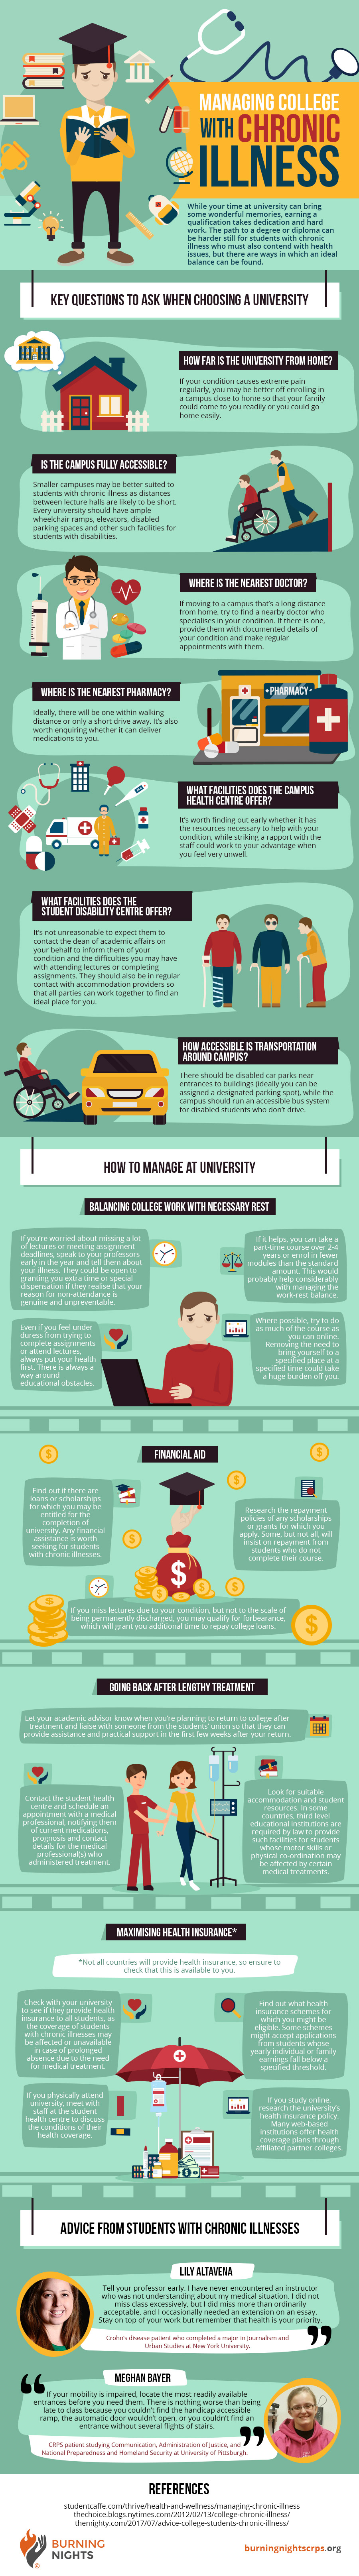 managing-college-with-chronic-illness-infographic.jpg